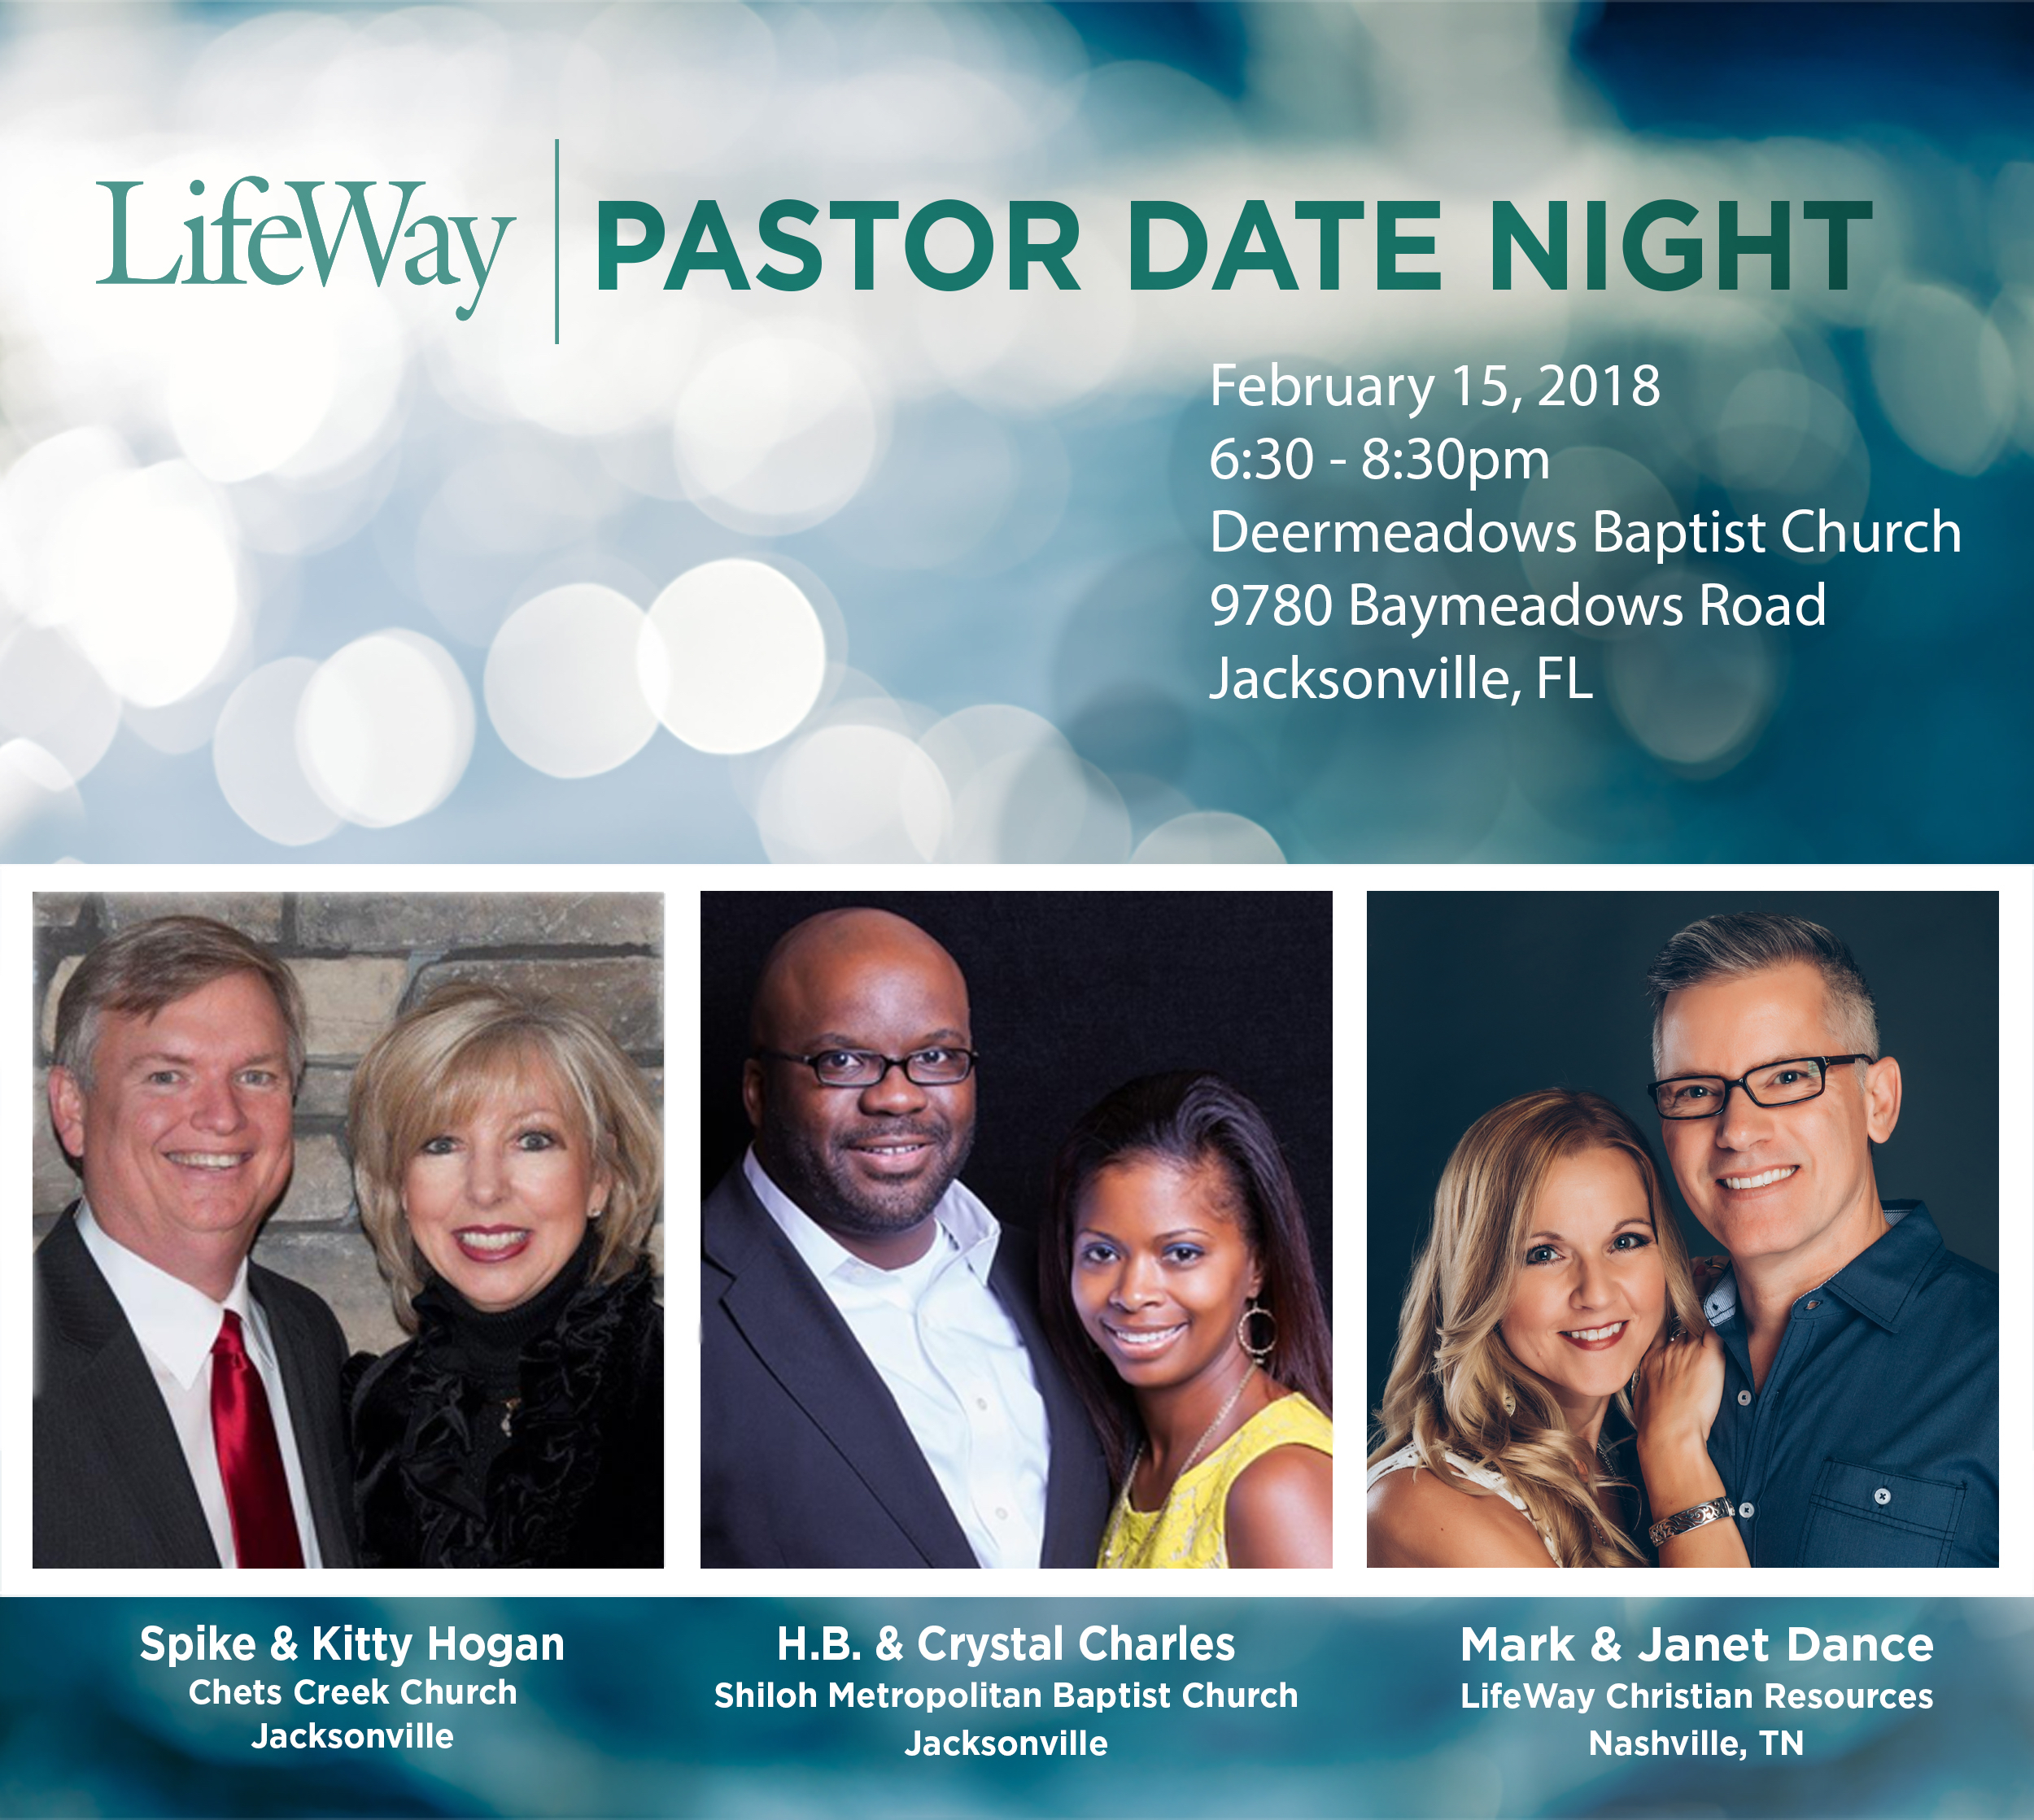 Pastor Date Night flier_final.jpg